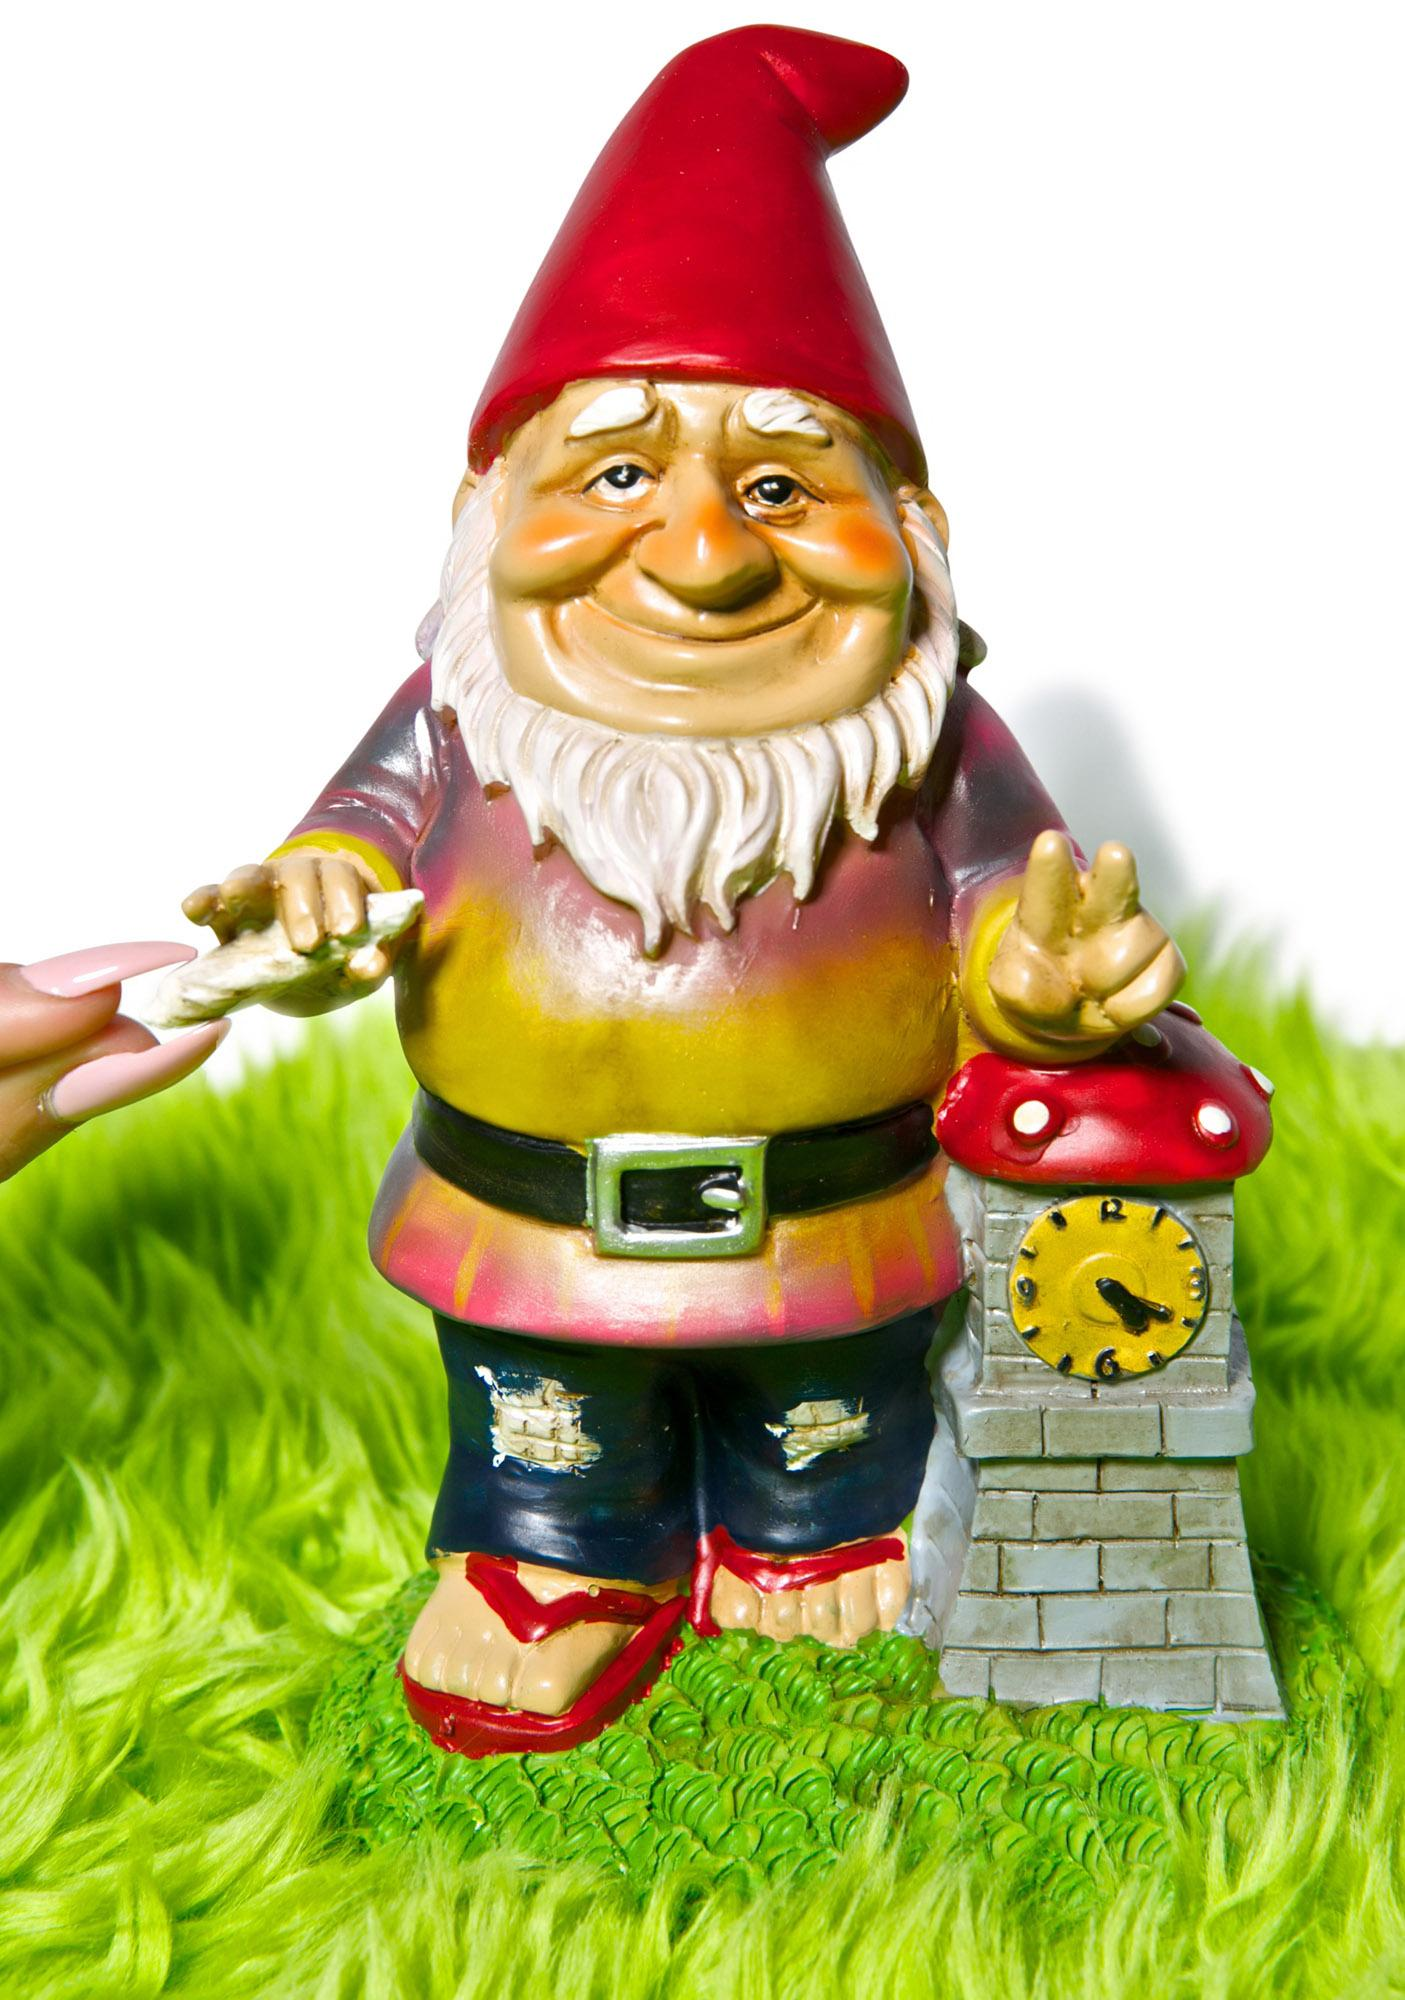 Whatzup The Garden Gnome Dude